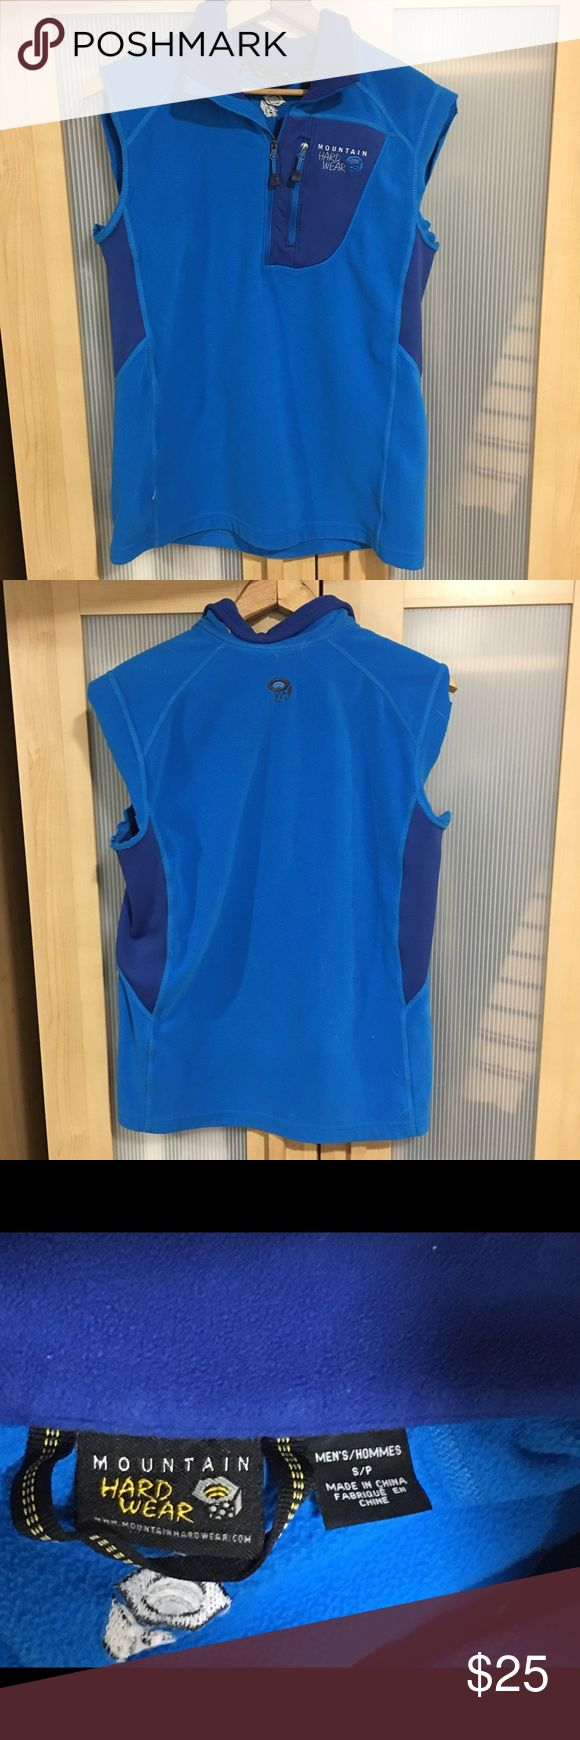 Mountain Hard Ware Half Zip Vest Mountain Hard Ware Half Zip Vest in blue. Excellent used condition. Includes a zipper pocket on chest of vest. Mountain Hard Wear Jackets & Coats Vests